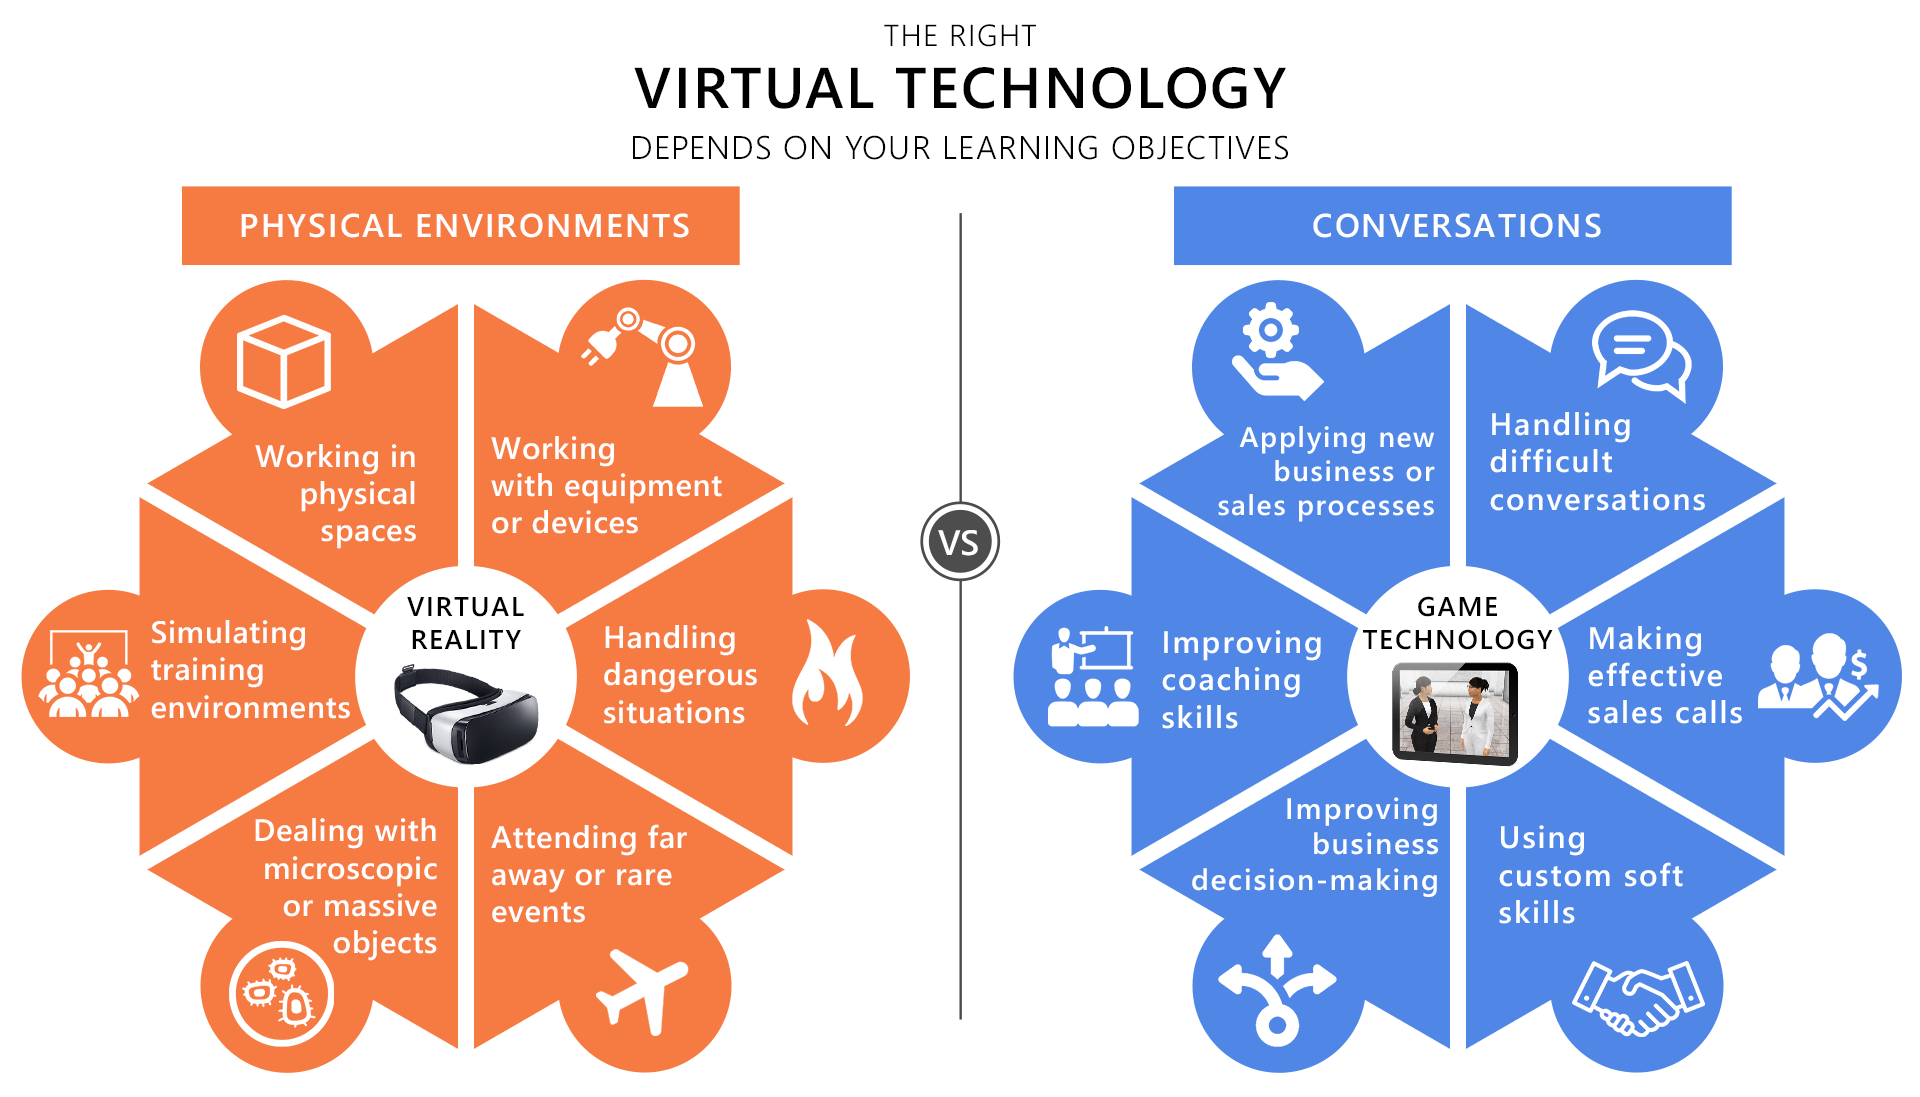 Virtual Technology Comparison for Learning: Virtual Reality vs Game Technology